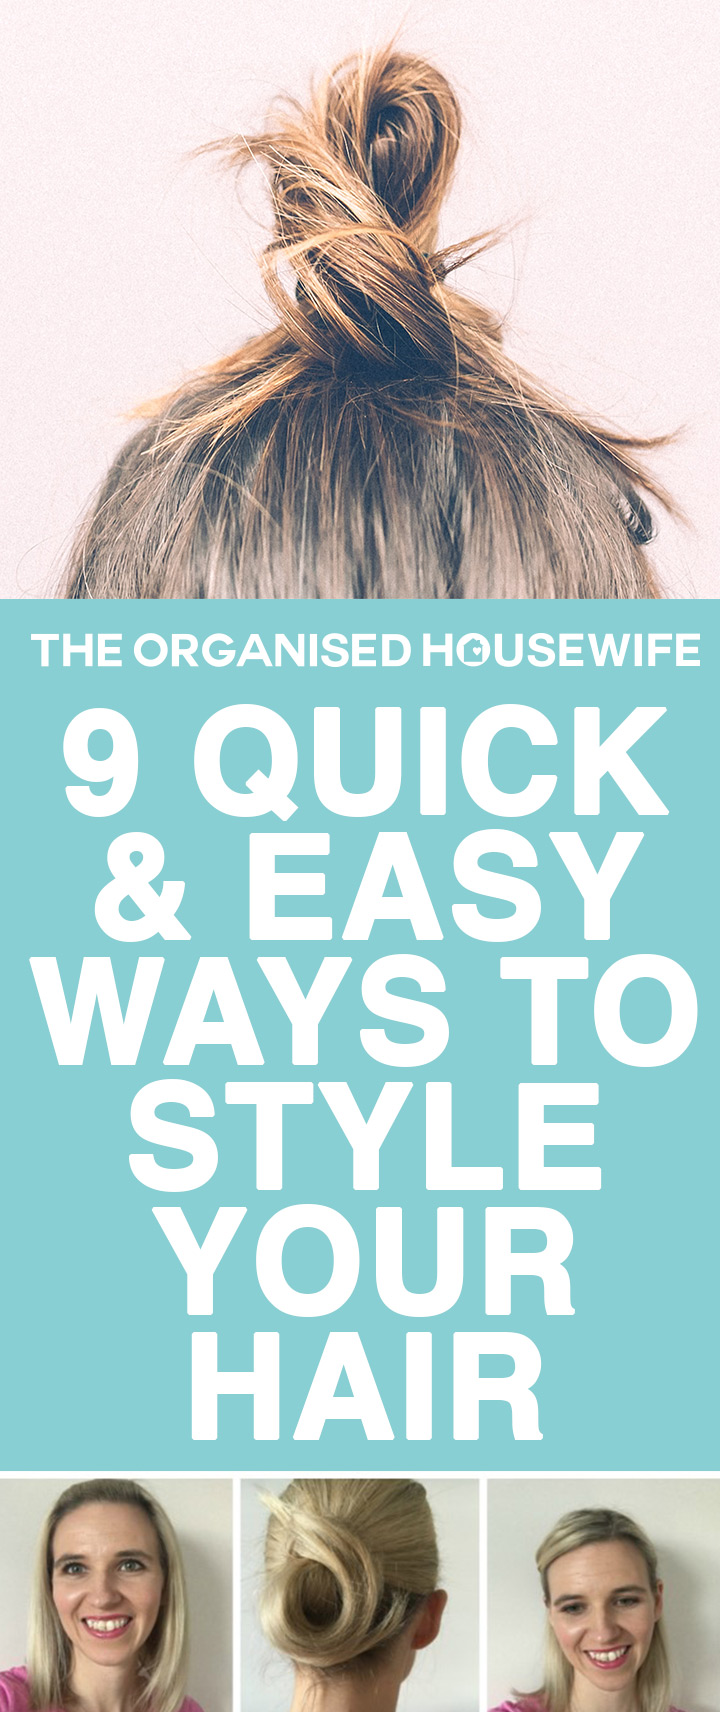 ways to style your hair 9 and easy ways to style your hair the organised 7579